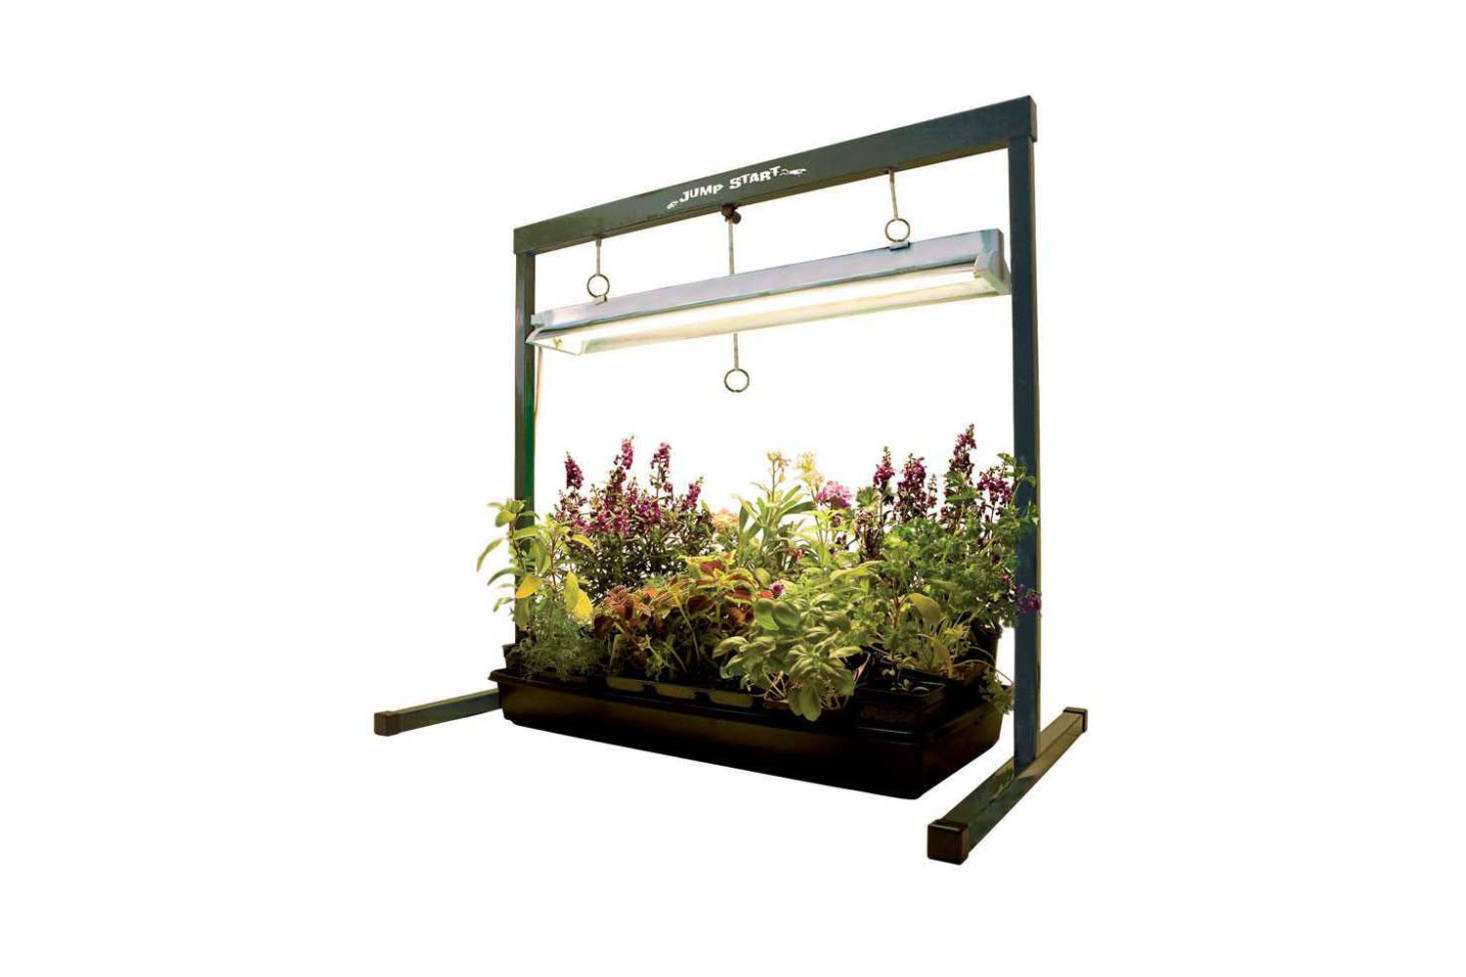 The Hydrofarm Hydroponic Grow Light is designed for germinating seeds and then, as plants grow, the upper bar and light extends to keep three to six inches away from the plant canopy. It&#8